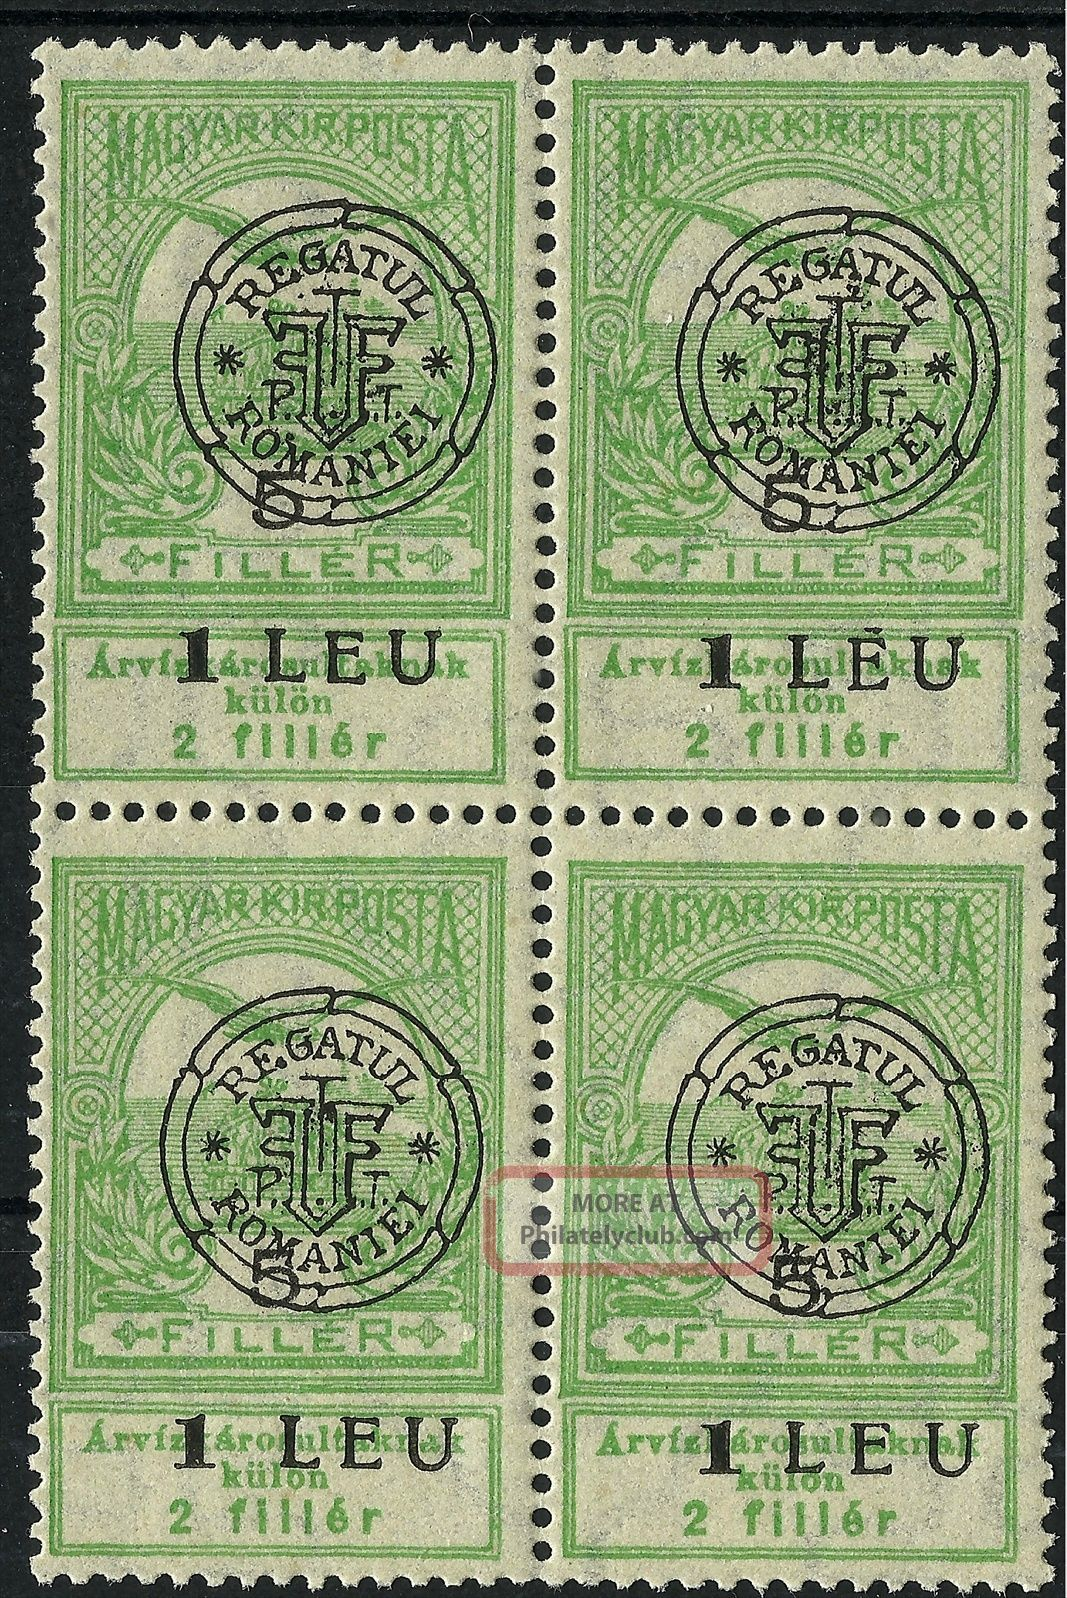 2 Errors In Bl.  With 4 St.  / Romania - Hungary 1919 Cluj (5 Filler / 1 Leu) Europe photo